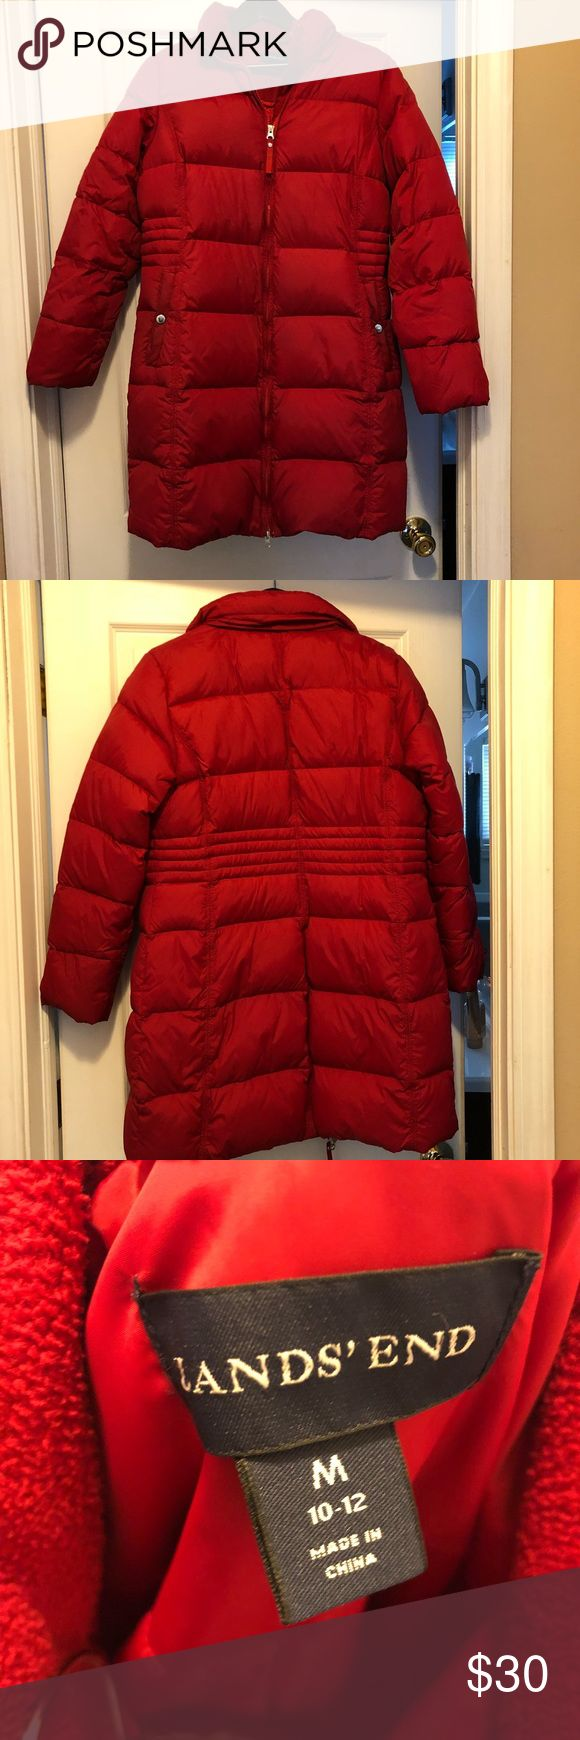 ❗️ONE DAY SALE❗️❄️Lands' End Down Coat❄️ Super warm down coat from Lands' End. Has a dual zipper that allows you to unzip from the bottom. Also, has an inside pocket. I got a new coat last winter so I never wear this one anymore so letting it go. It's in great condition and only sign of wear was near both pockets as they are a little darker as shown in picture 5 & 6. Bundle with another item in my closet for 20% off! *price is firm unless bundled! Lands' End Jackets & Coats